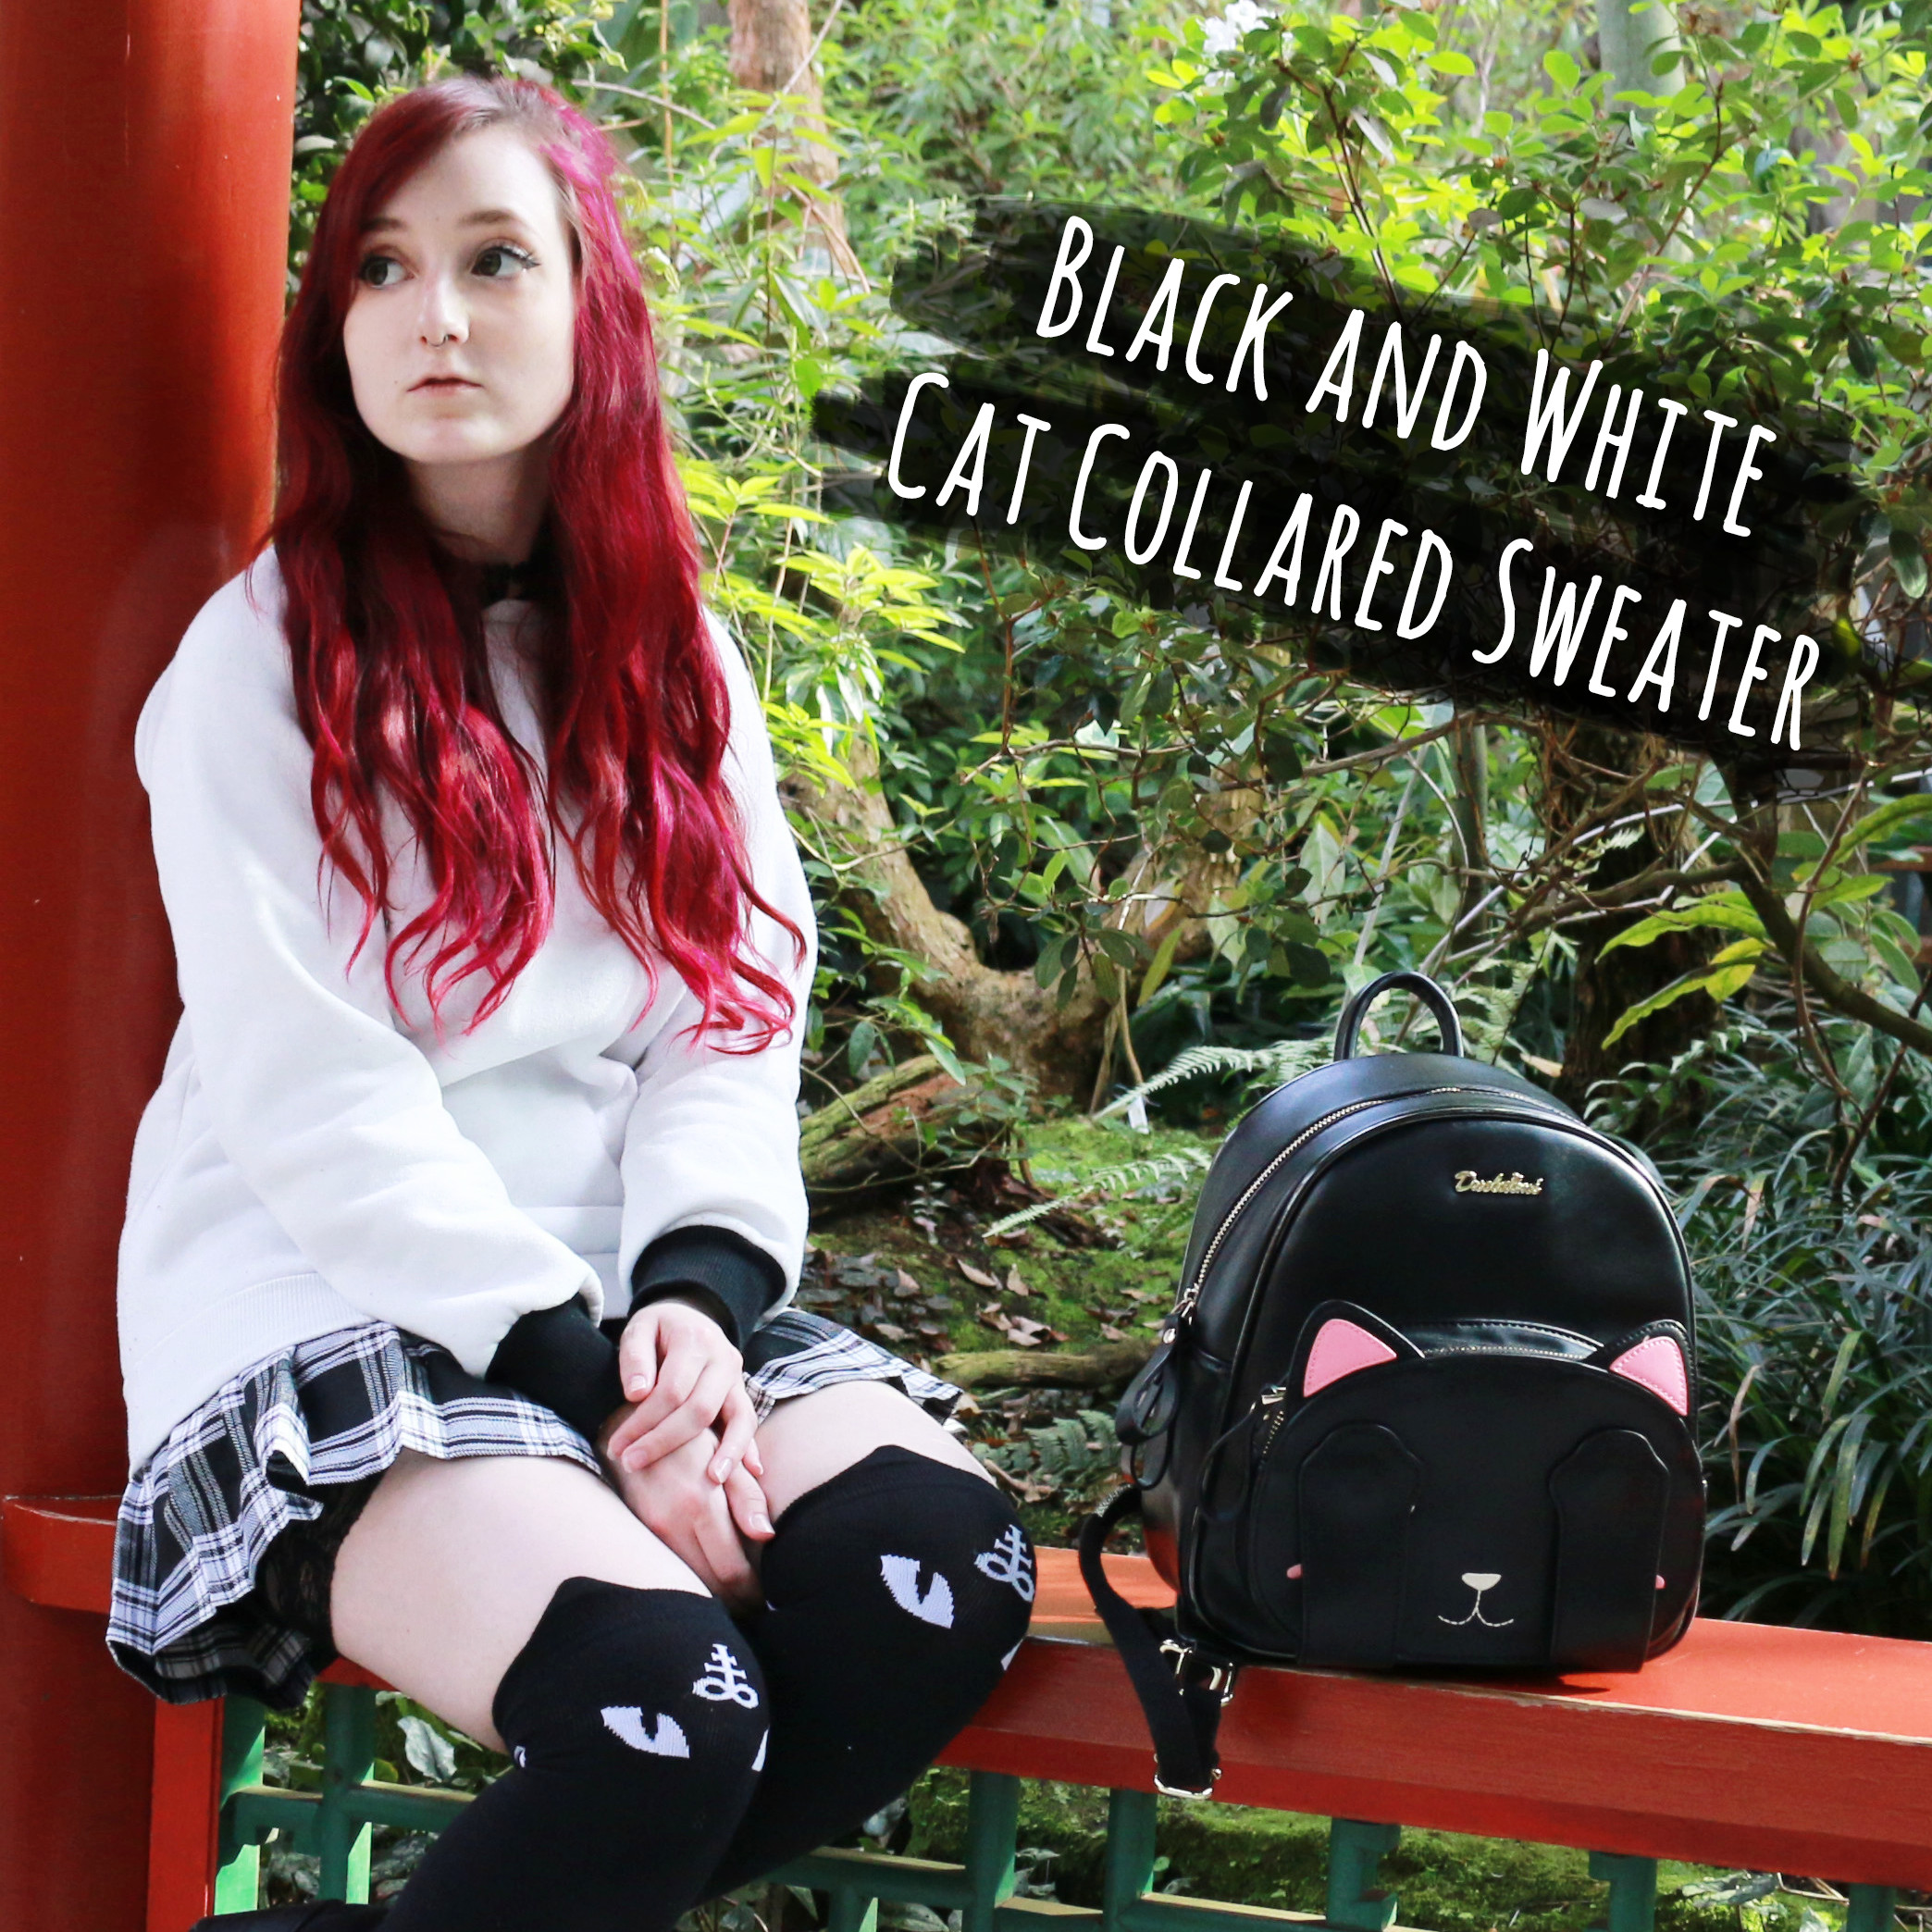 Outfit: Black and White Cat Collared Sweater